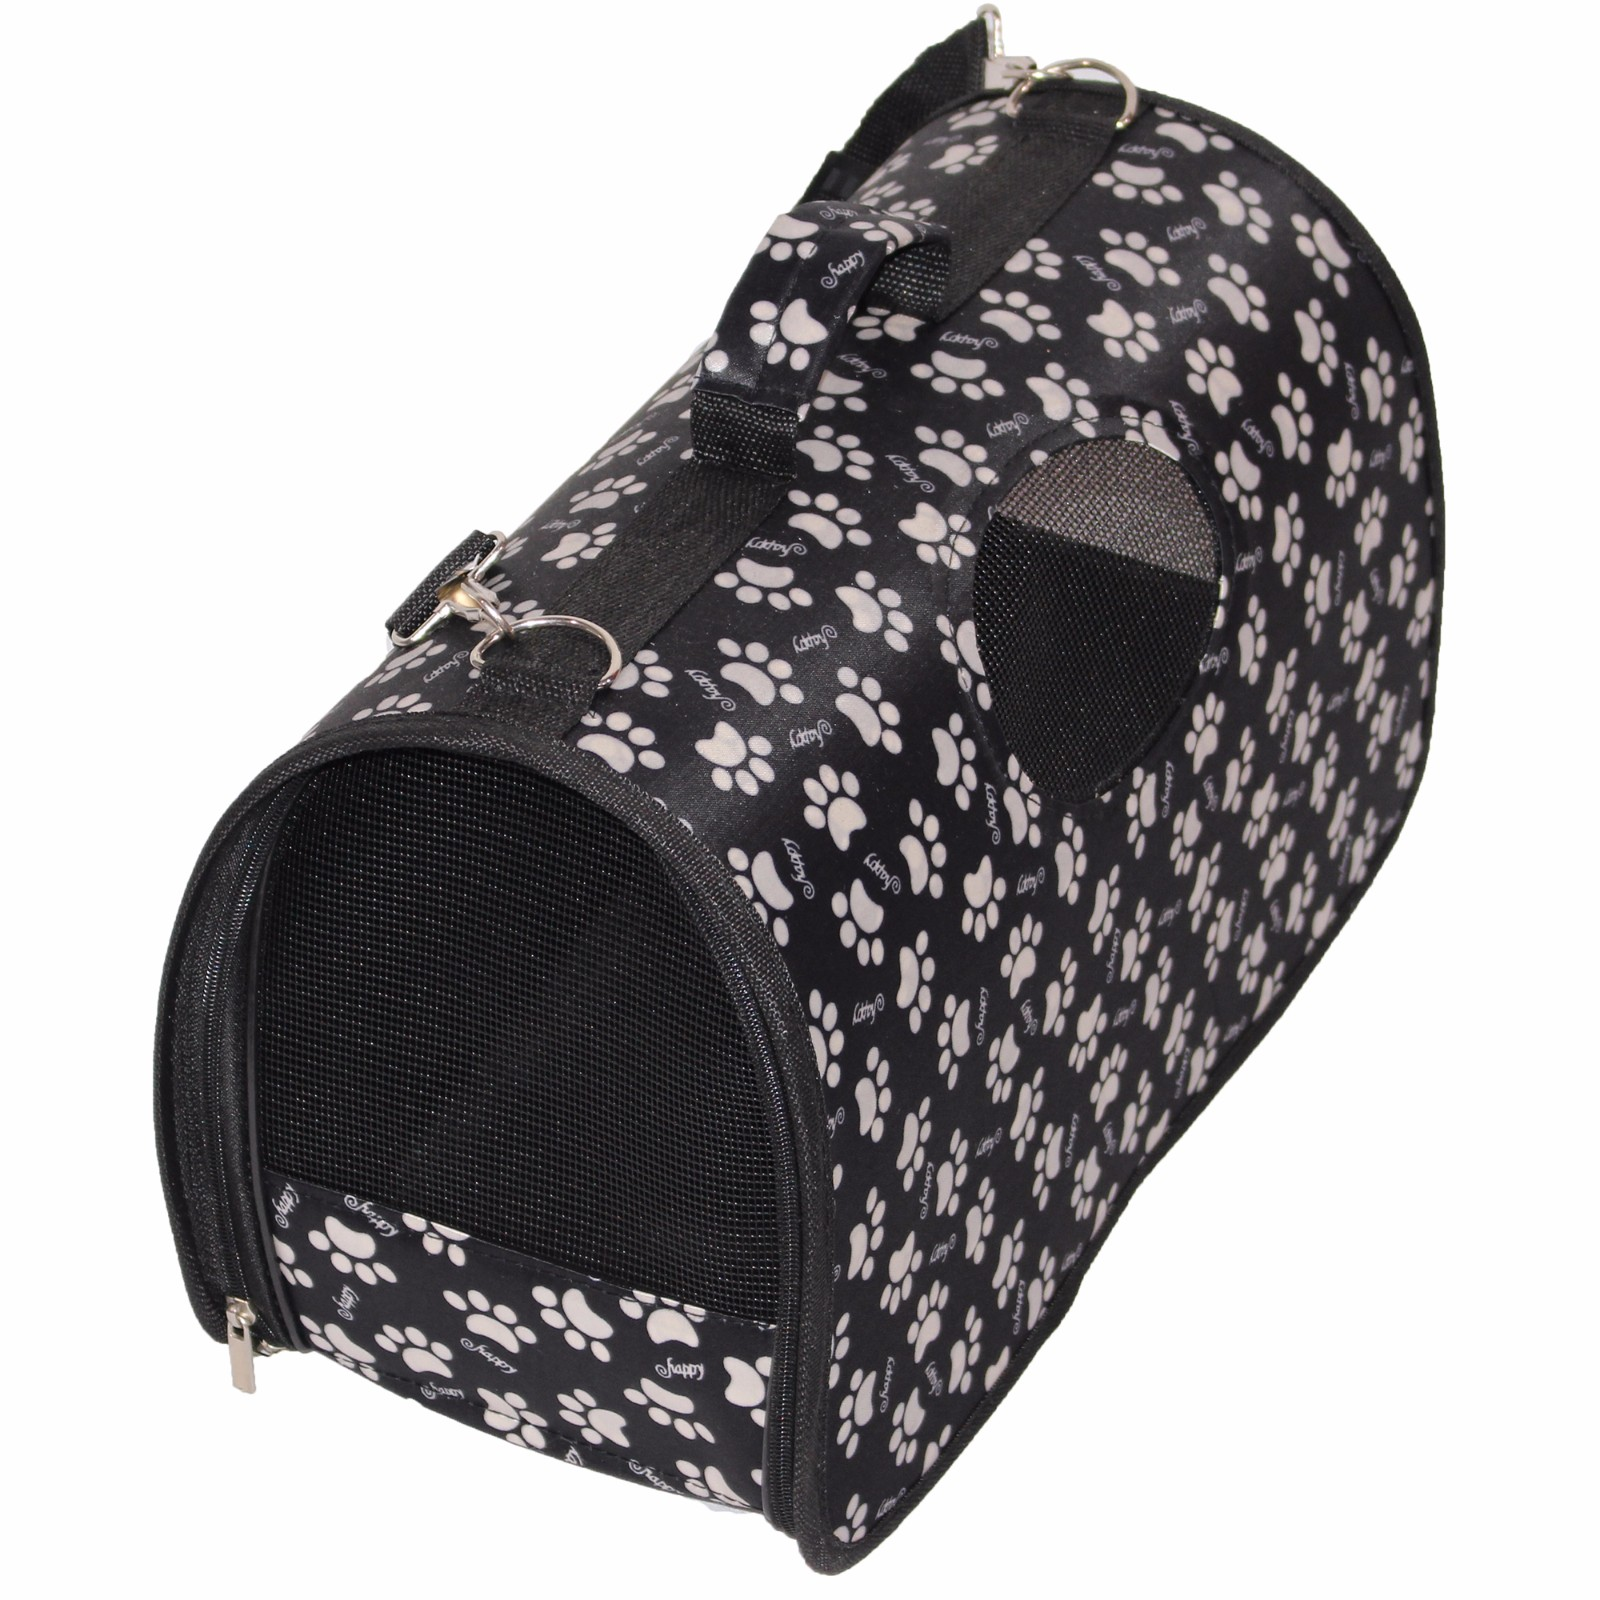 Premium Airline Approved Foldable Pet Travel Carrier,Mesh Sided Tote, Dogs, Purses, Perfect for Kitty and Puppy